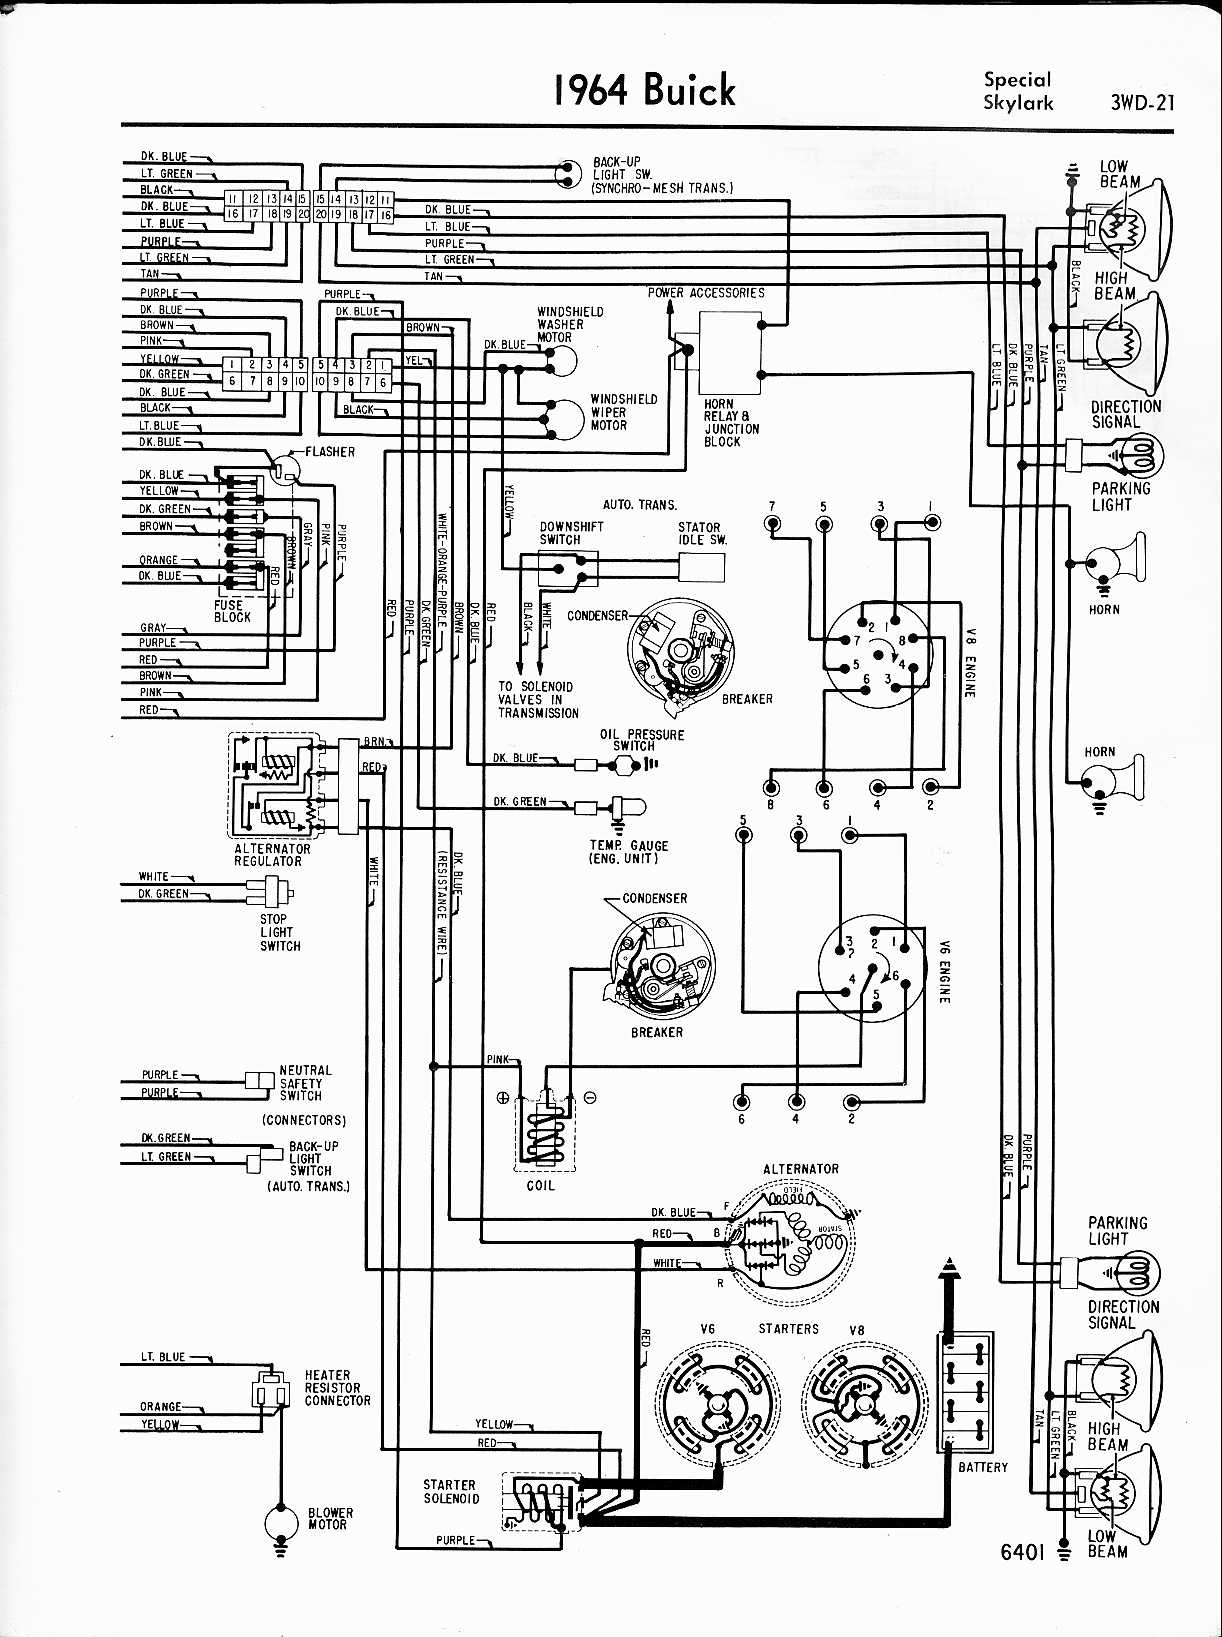 [DIAGRAM_1JK]  07250 1965 Buick Special Wiring Diagram | Wiring Resources | 1966 Buick Special Wiring Diagram |  | Wiring Resources